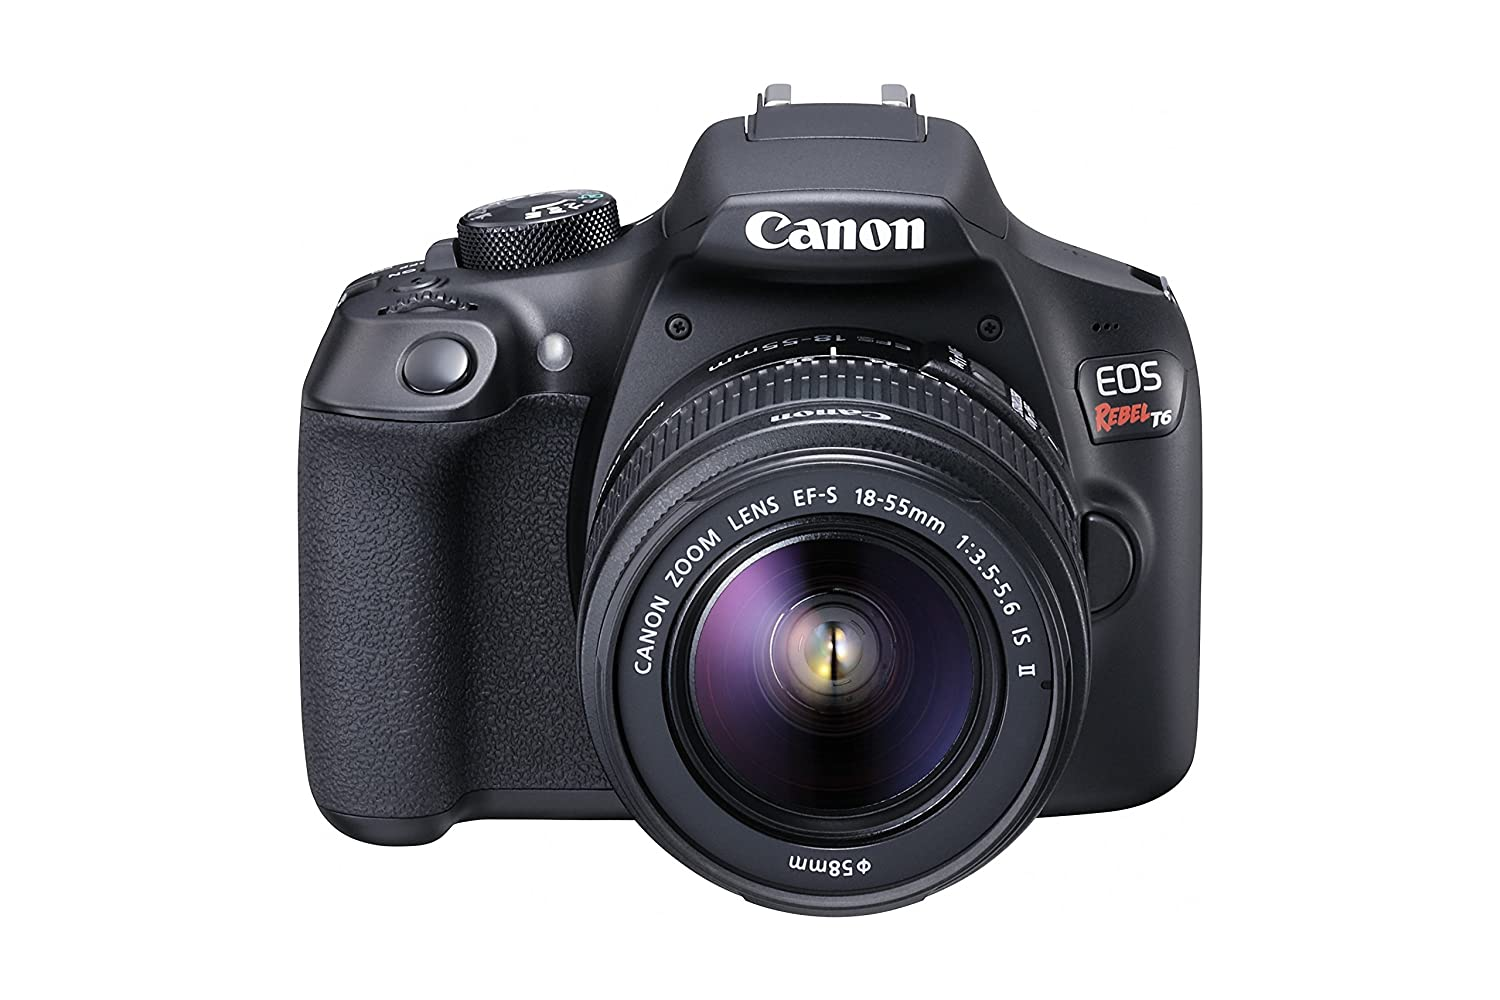 Camera Canon Dslr Camera Price In India buy canon eos rebel t6 18mp digital slr camera kit with ef s 18 55mm f3 5 6 is ii lens black online at low price in india can